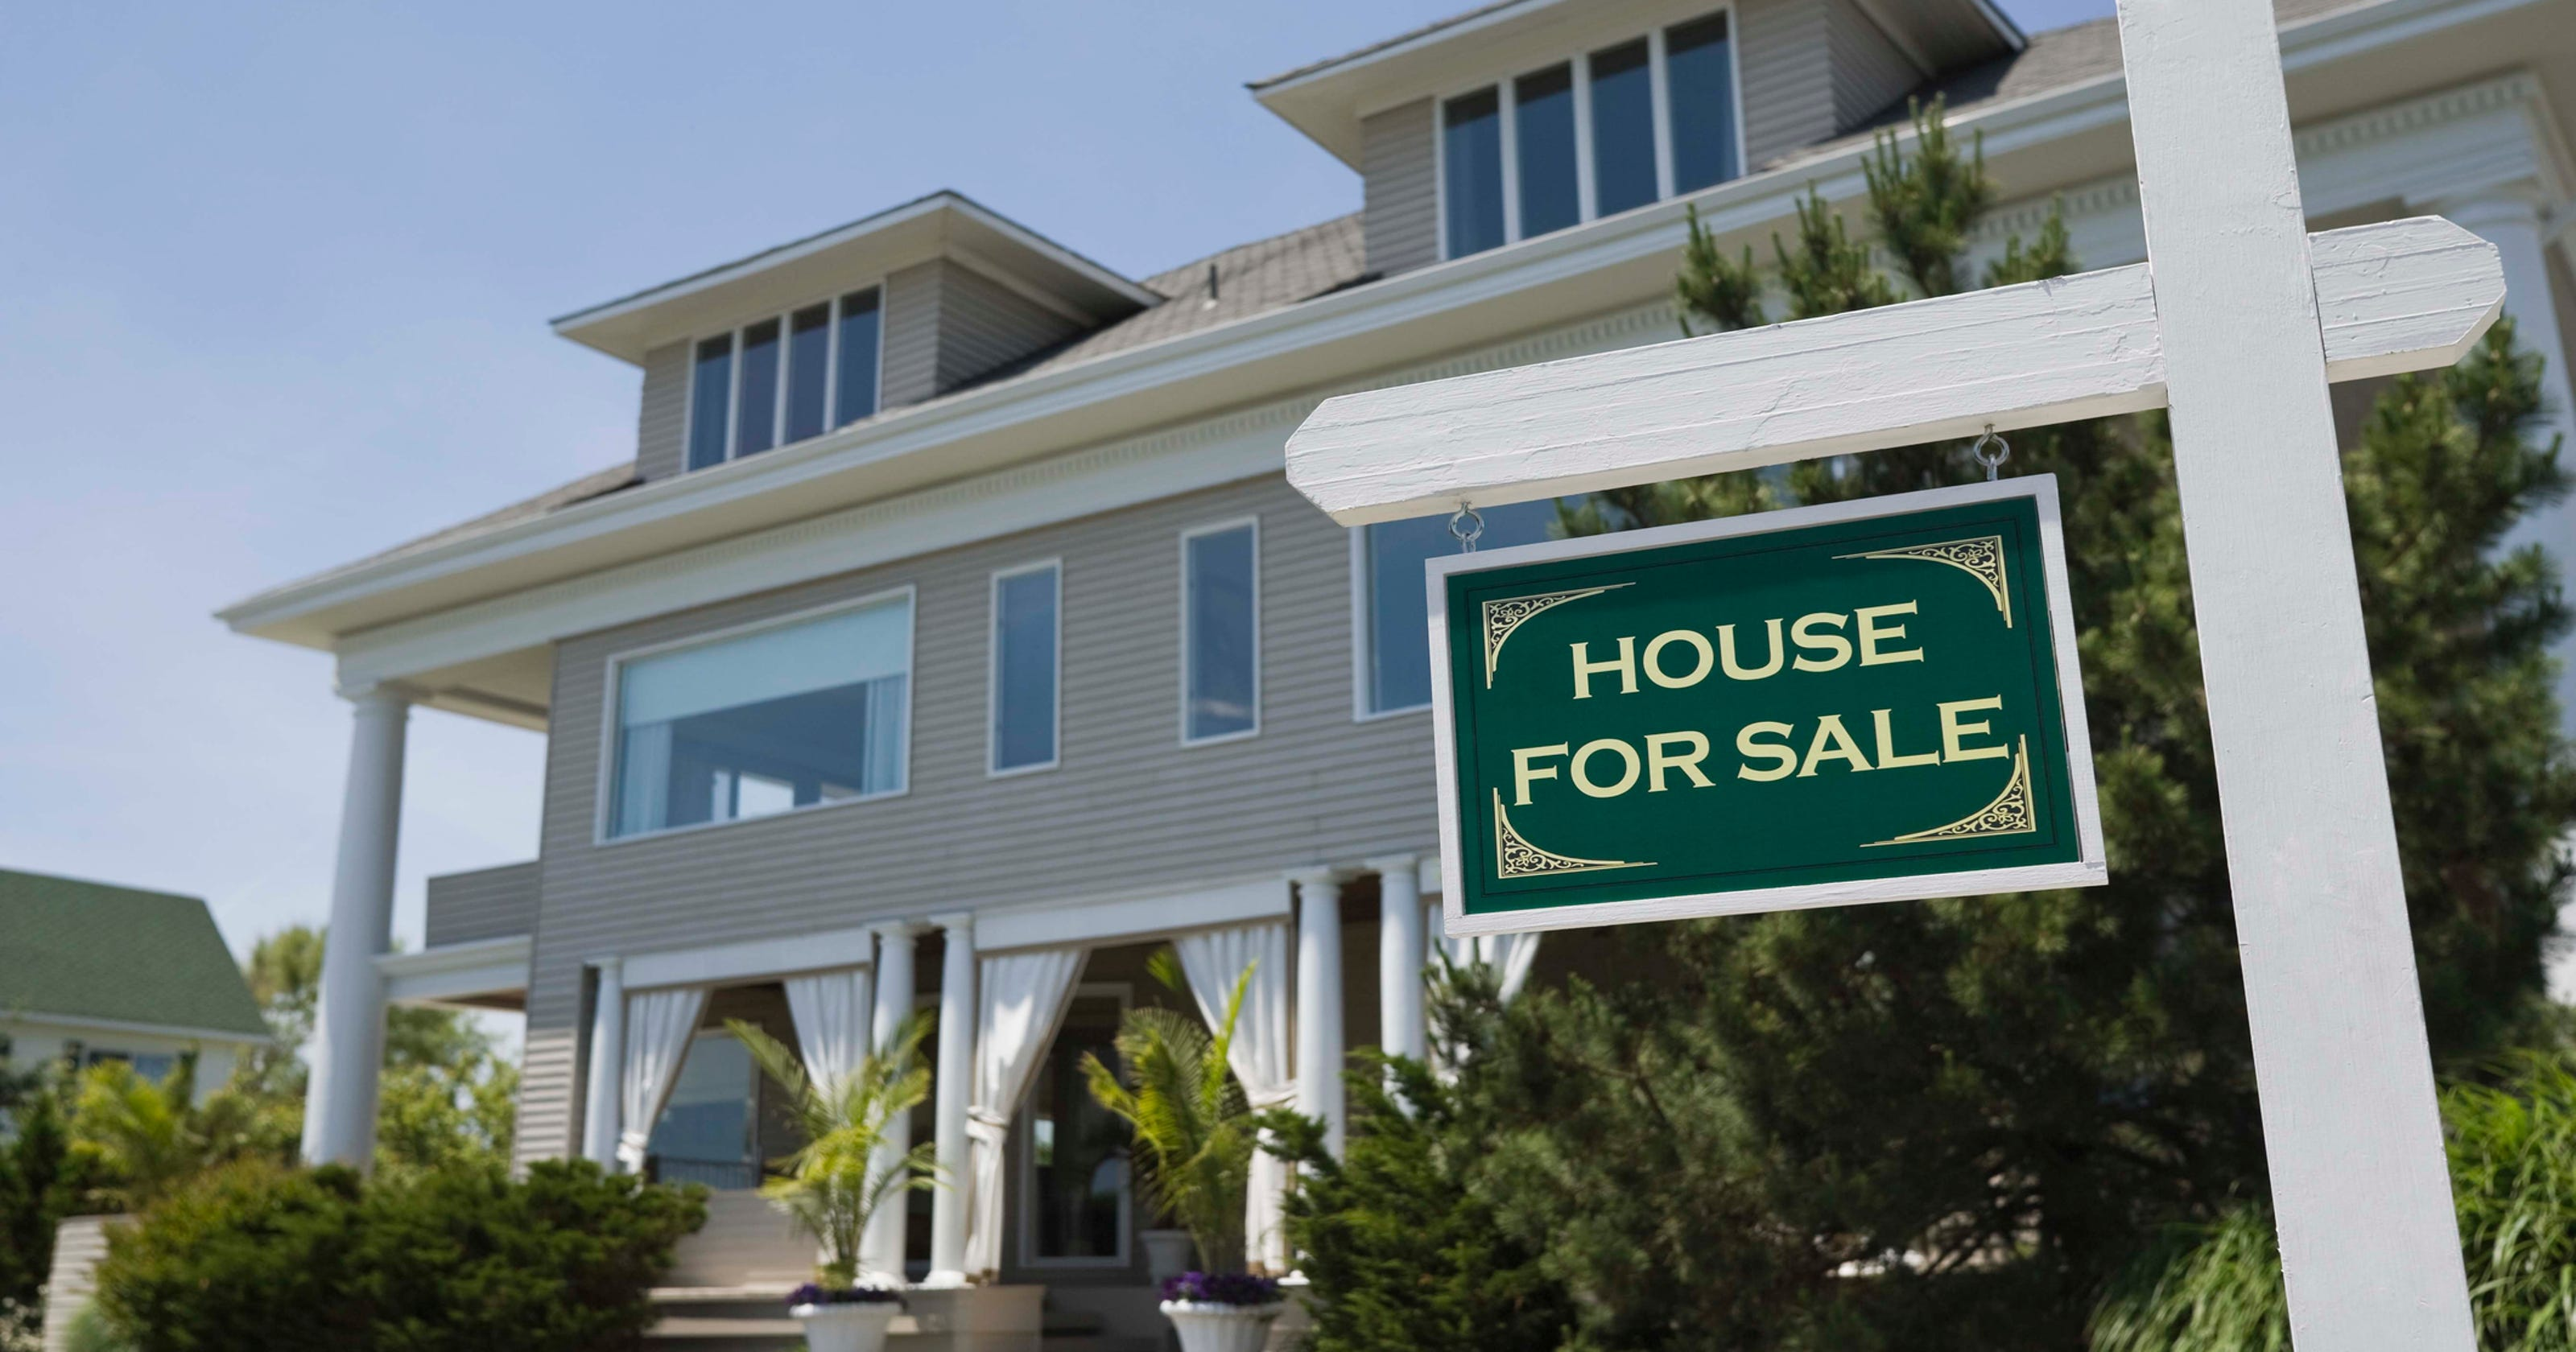 Homes for sale: Here's where the housing market is the hottest